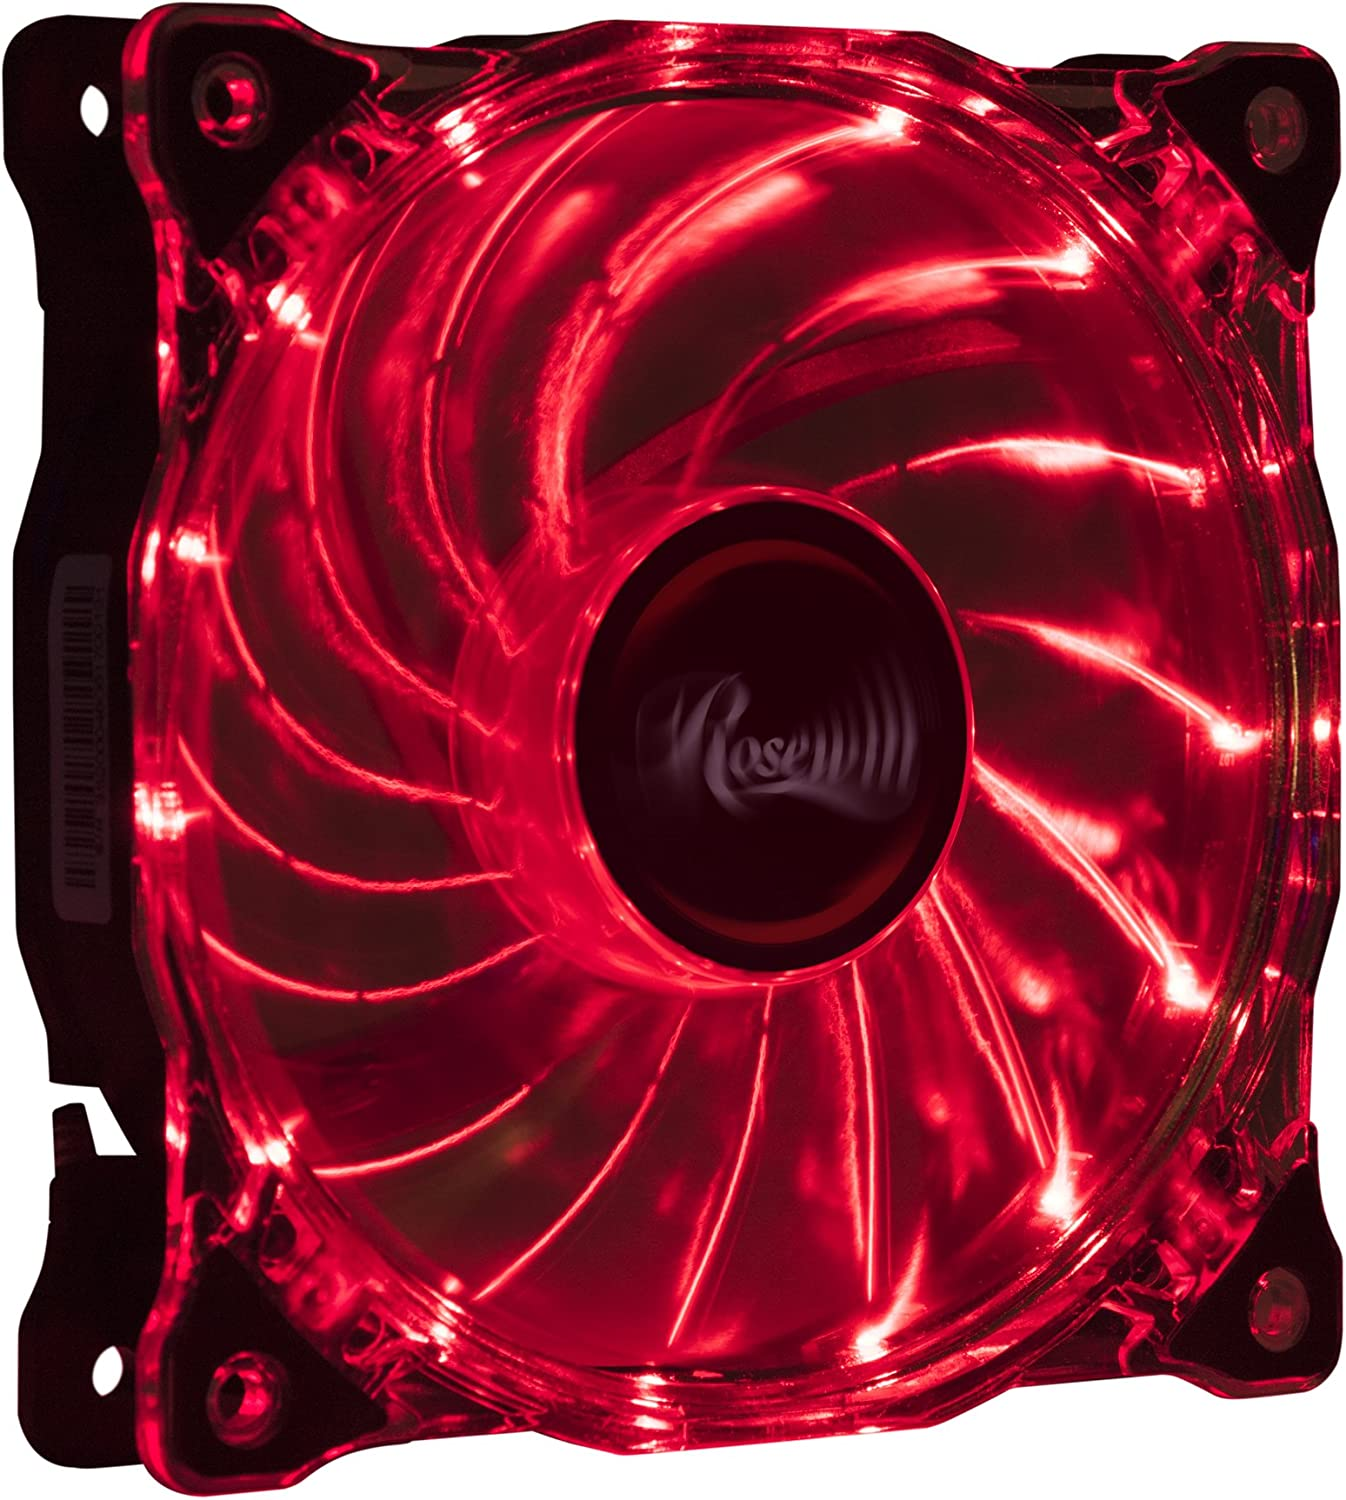 Rosewill 120mm CULLINAN Computer Case Cooling Fan with LP4 Adapter, Red LED Lights, Sleeve Bearing, Silent RFA-80RL